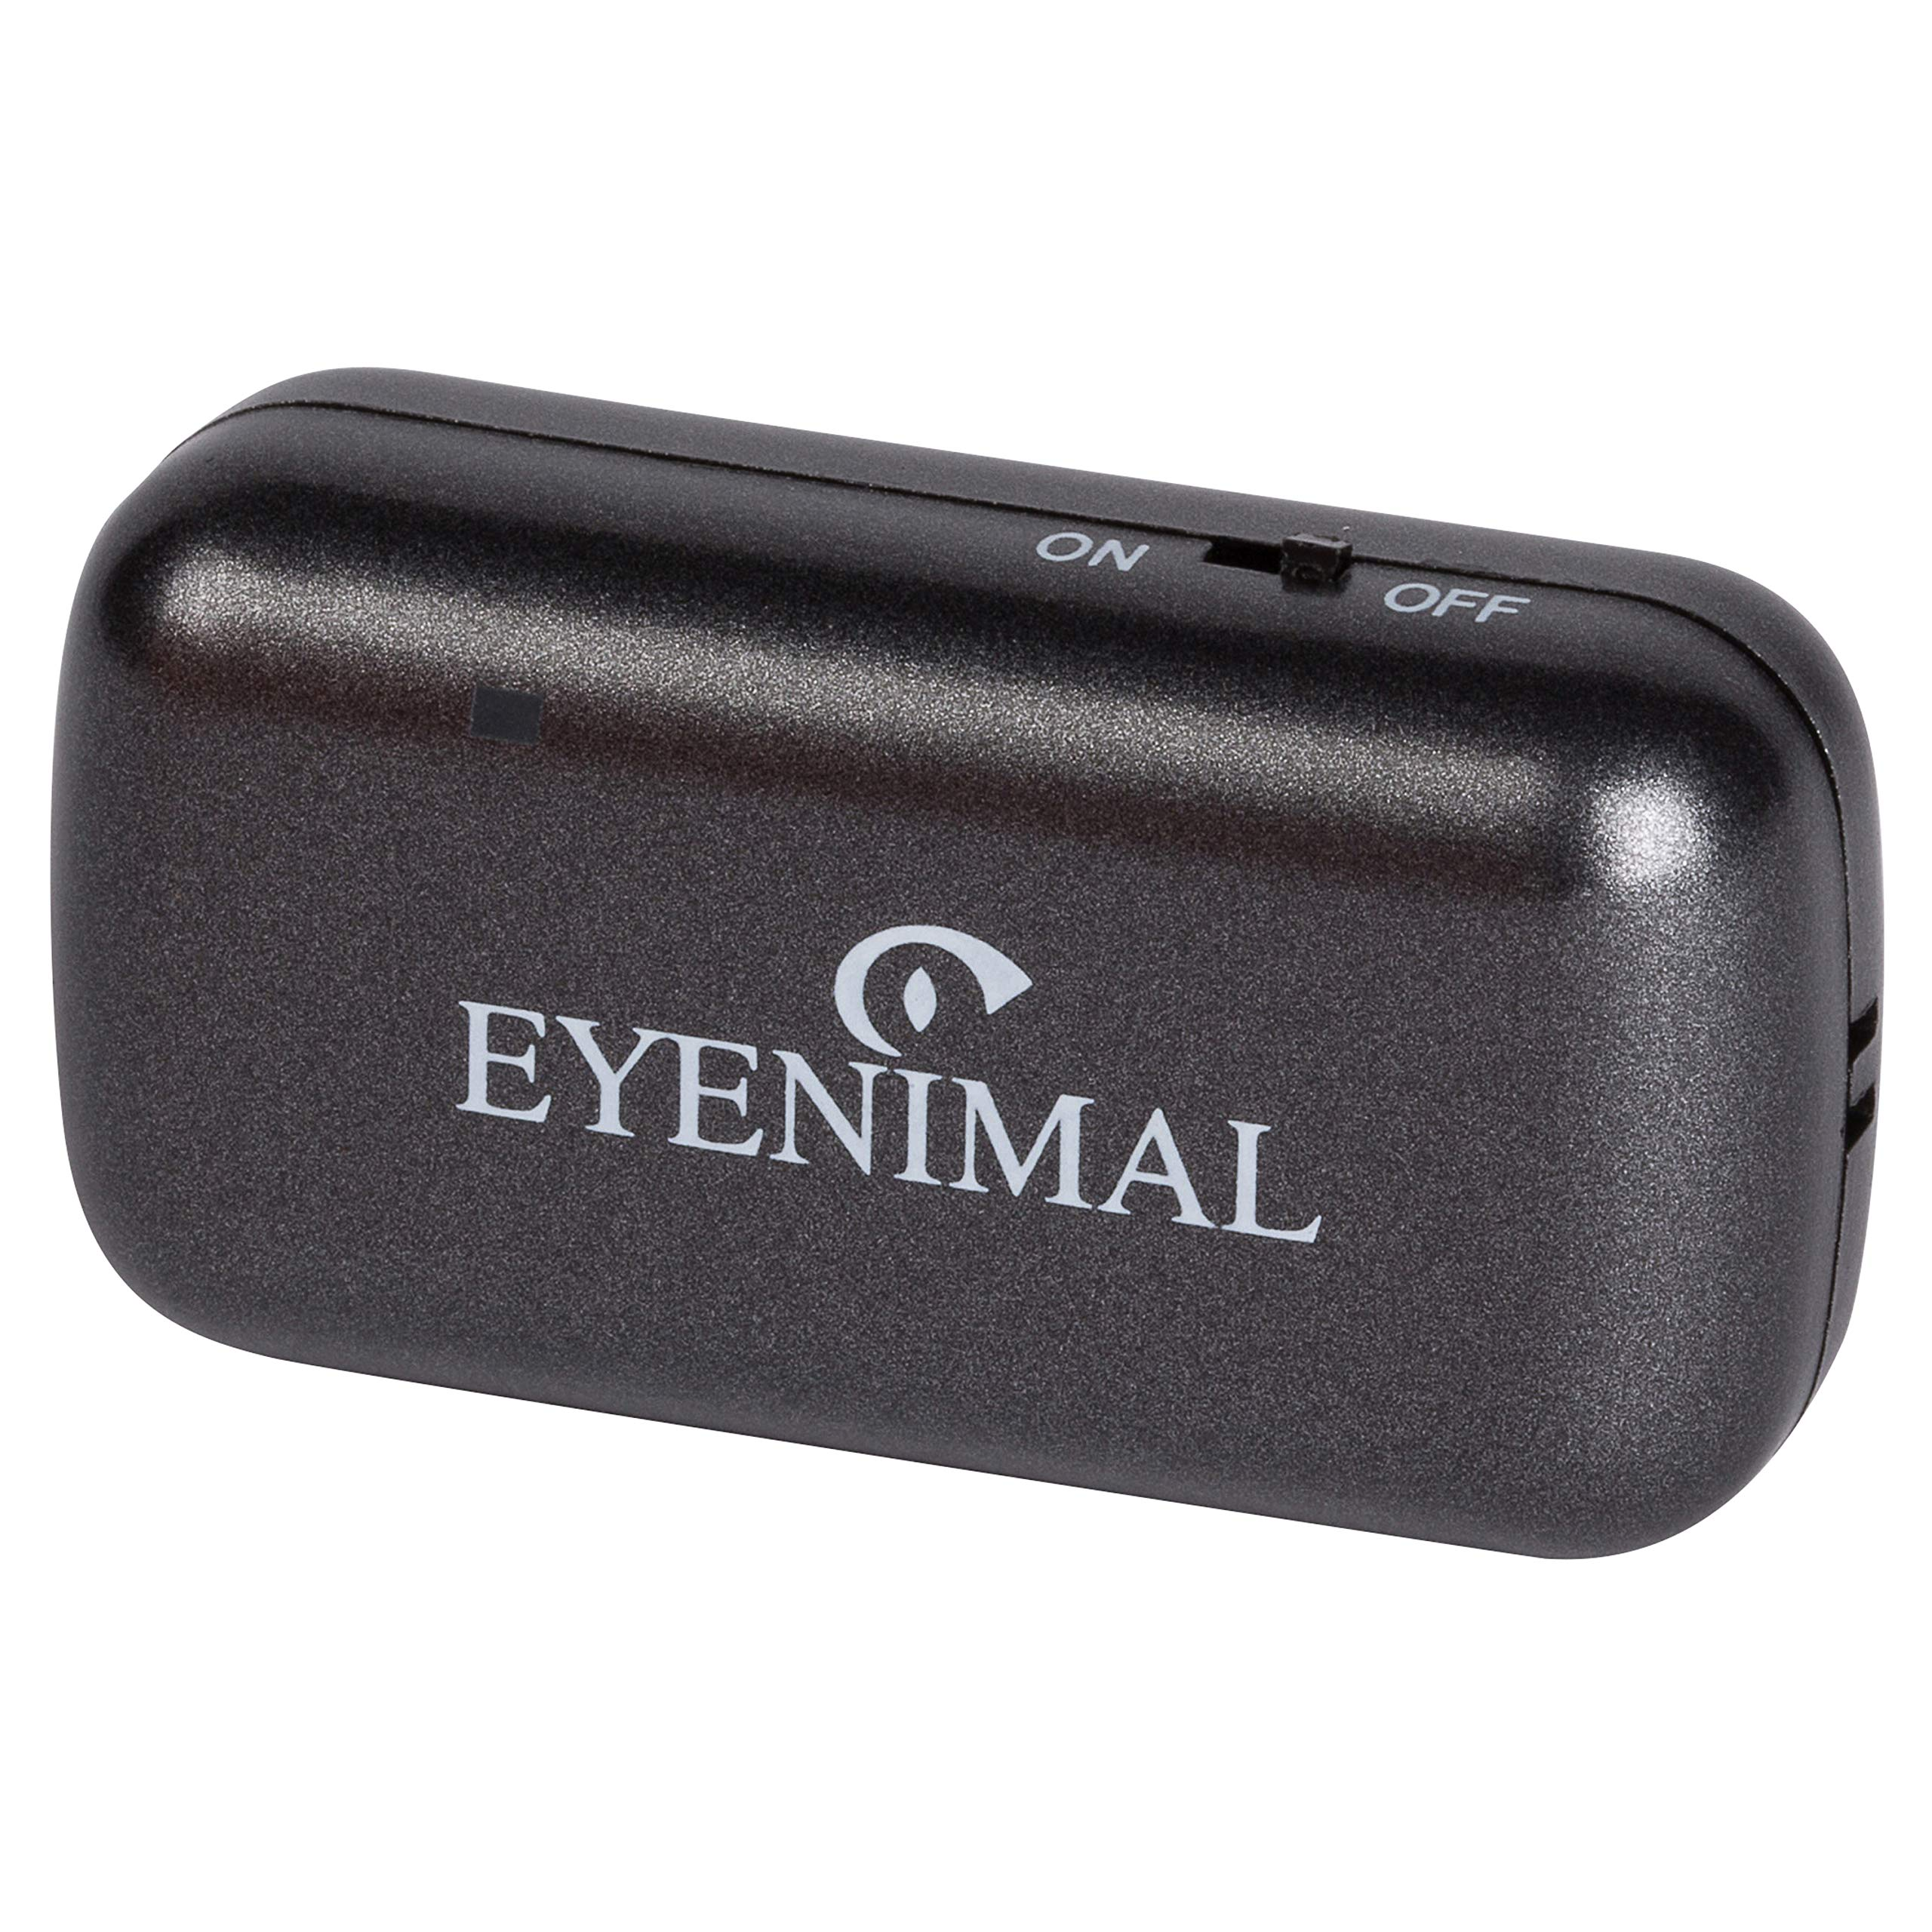 Eyenimal NGREPGEO006 Pet Data Recorder